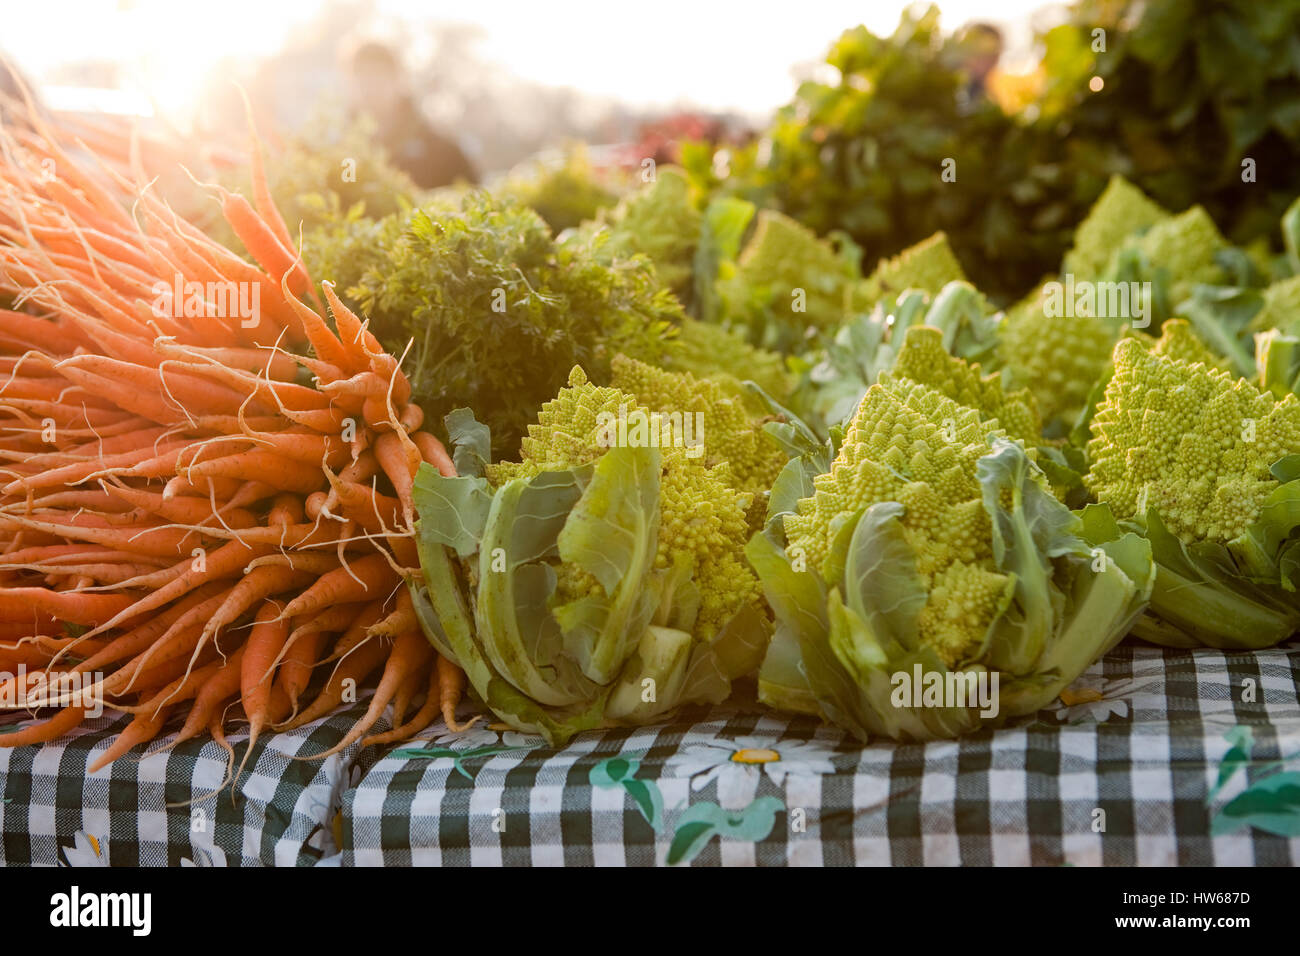 Romanesco cauliflower and carrots for sale at a Farmer's Market. - Stock Image